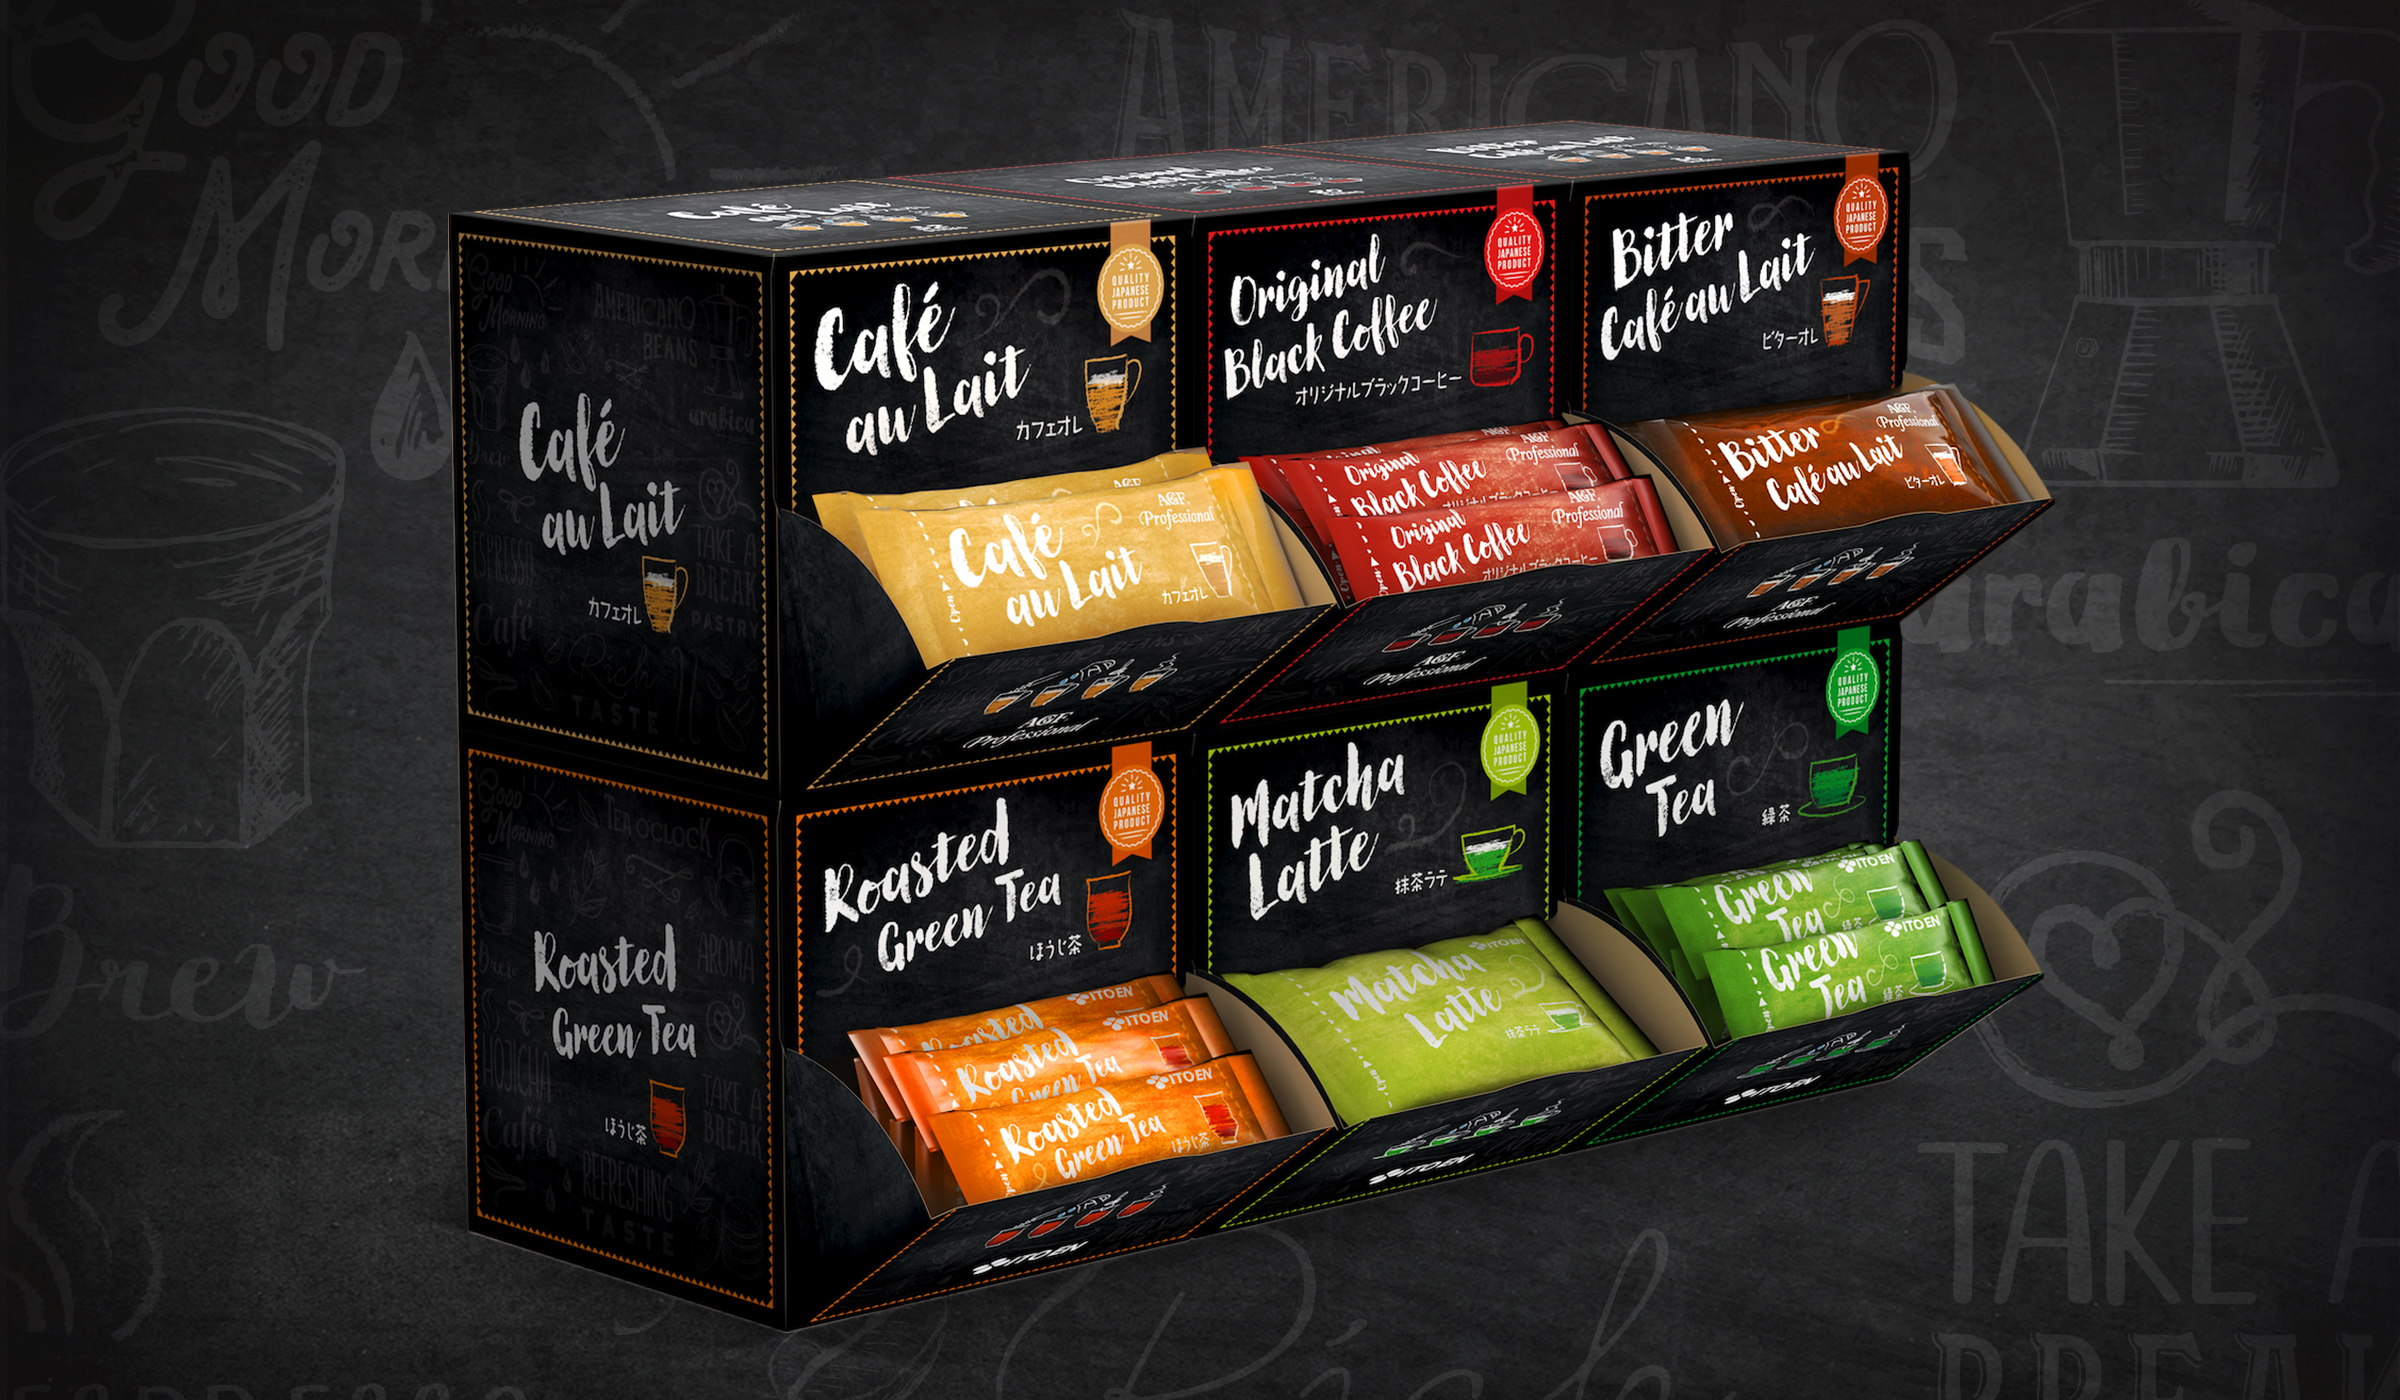 Image of Pemberton & Whitefoord LLP's cube box coffee sachet packaging design solution for Japanese retailer, ASKUL. The design looks premium with a white script font on a black background, giving the impression of handwritten notes on a chalkboard.